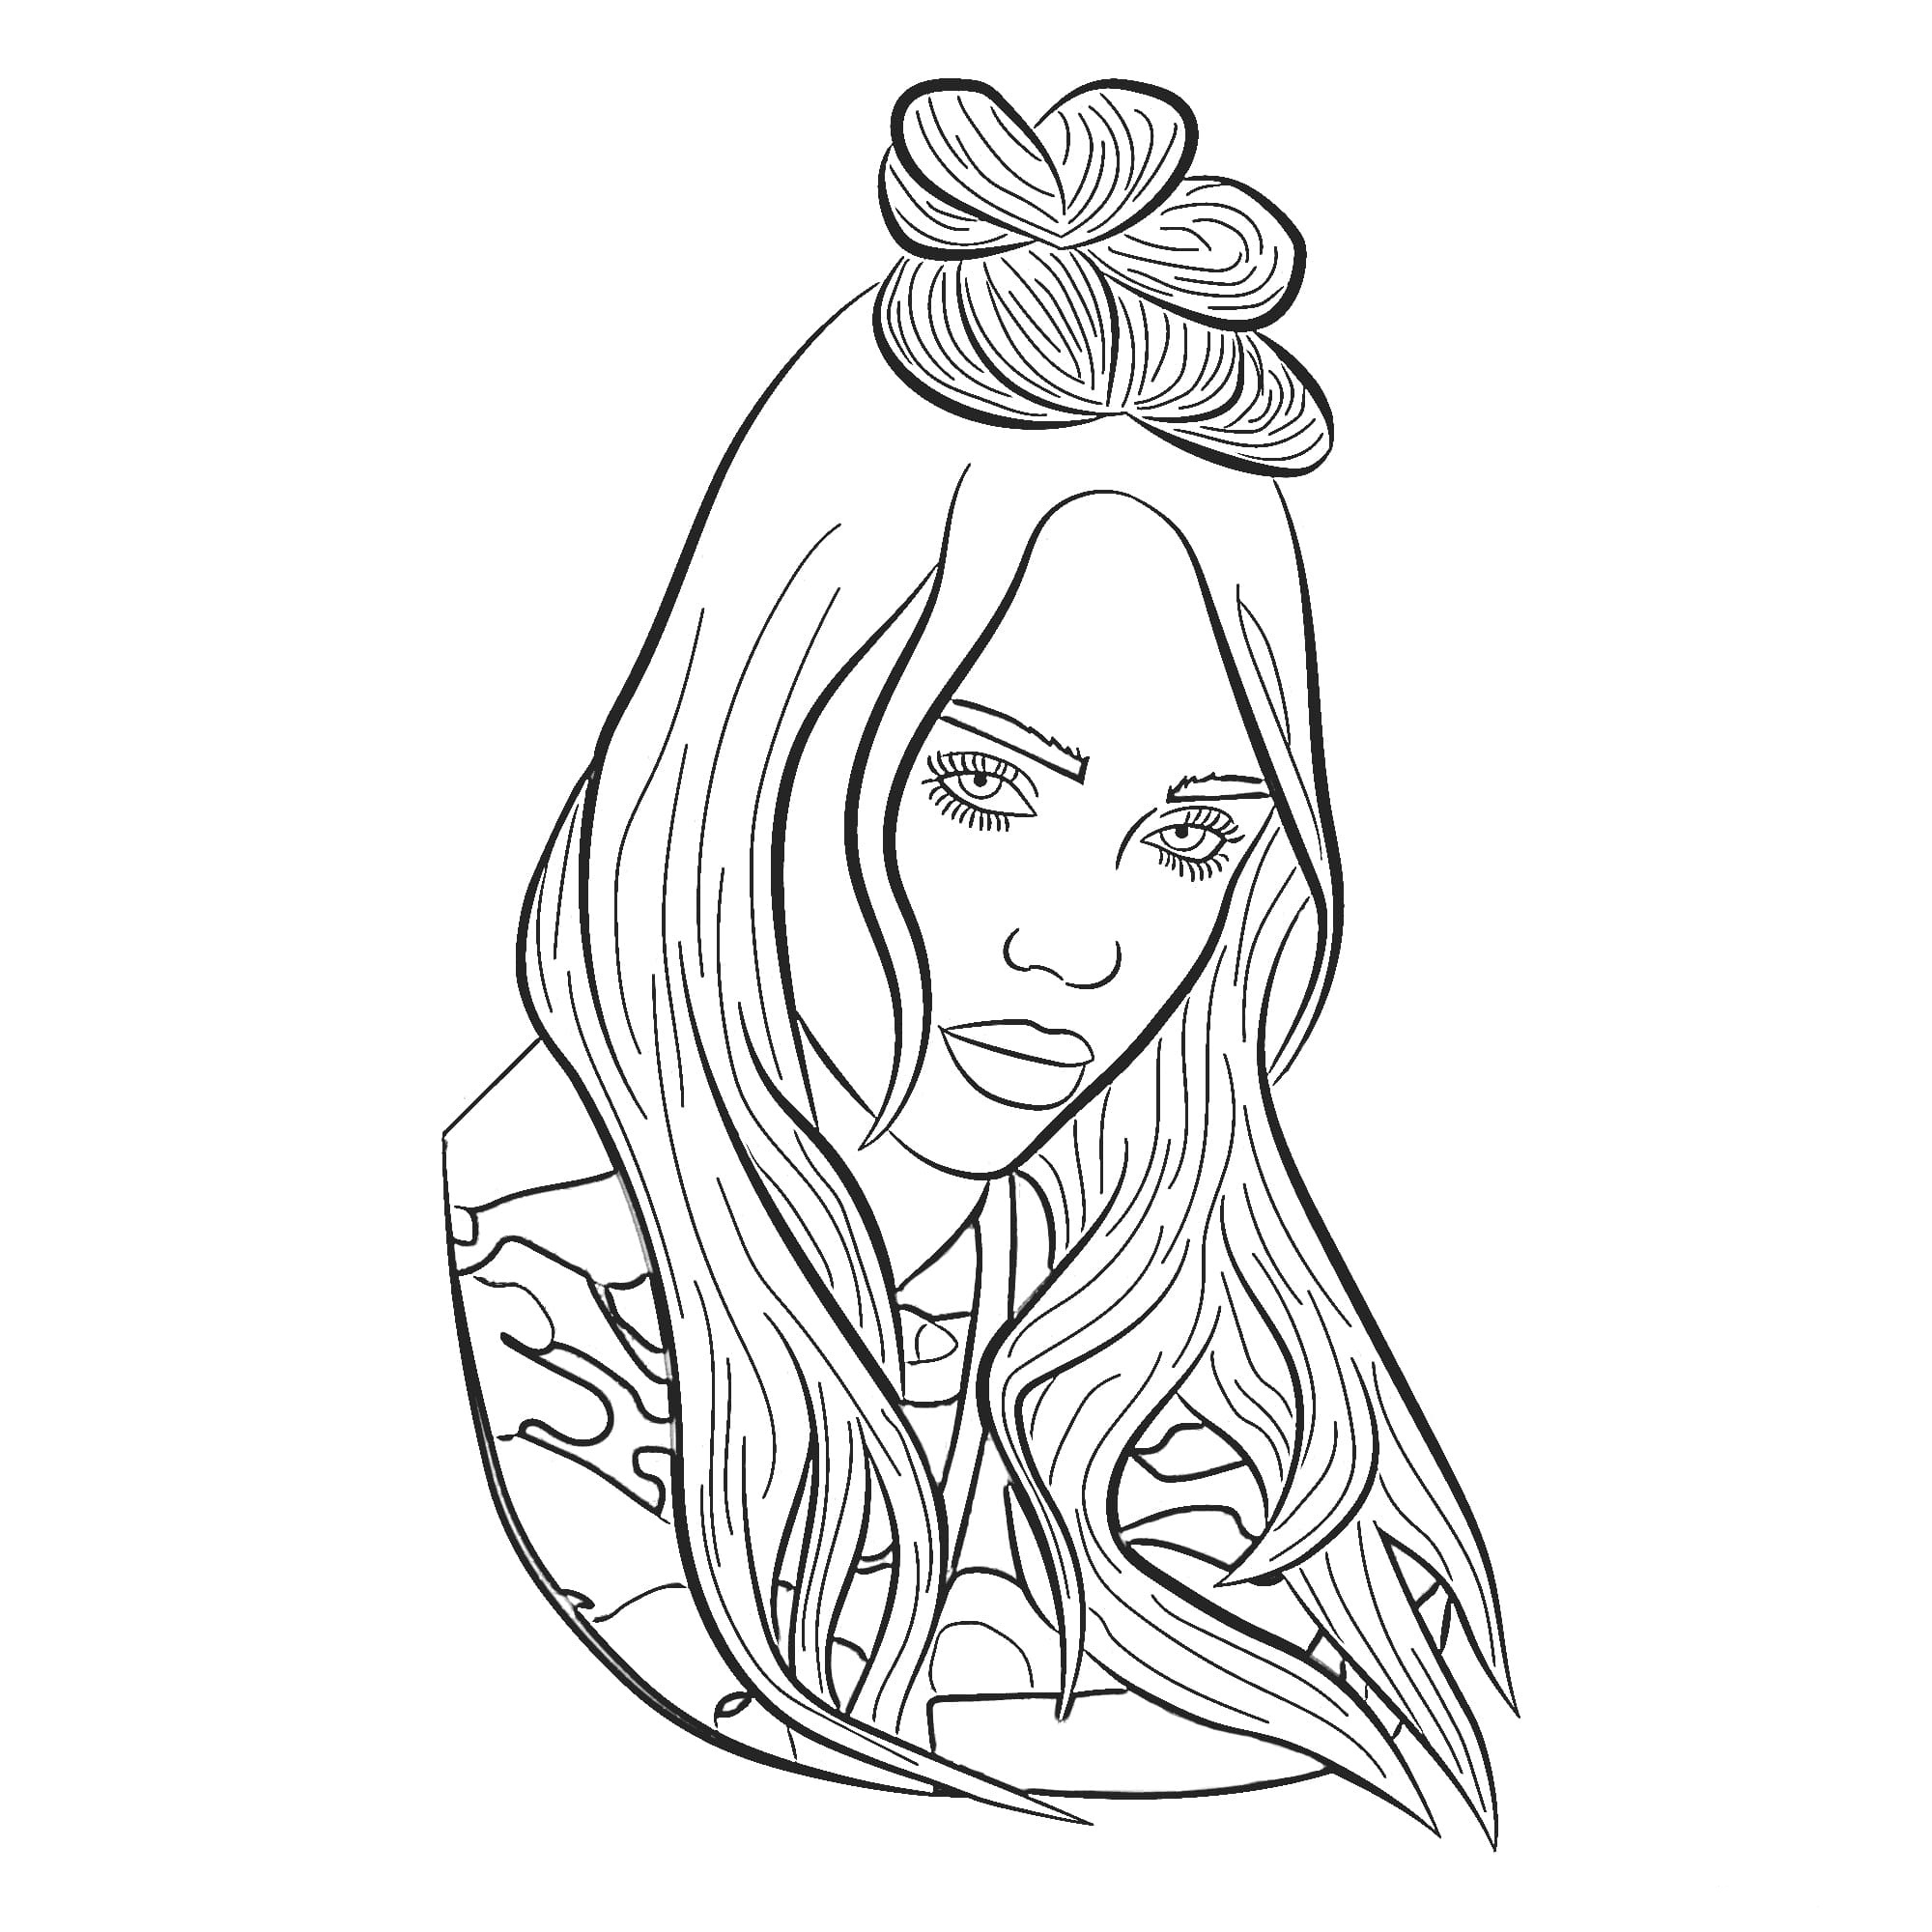 301 Best Color - Hair images | Adult coloring pages, Coloring ... | 2000x2000